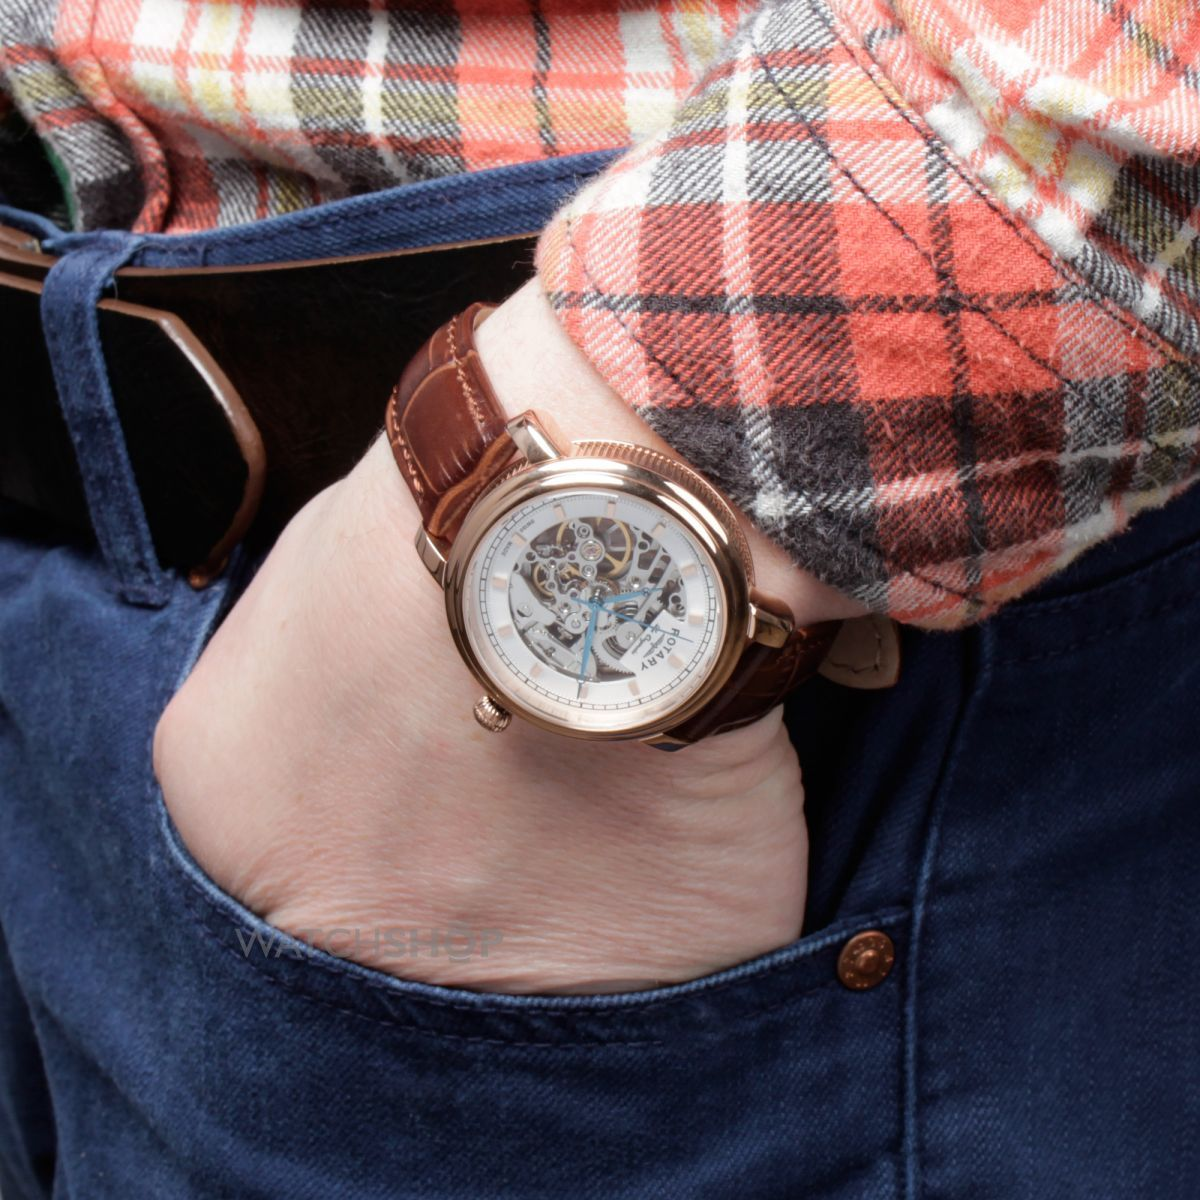 Pin De Jay Nieves En Wristcheck Pinterest Watches Gratis Ongkir Fossil Me3064 Townsman Automatic Brown Leather Strap Watch 80 Off On Amazon Rotary Jura Http